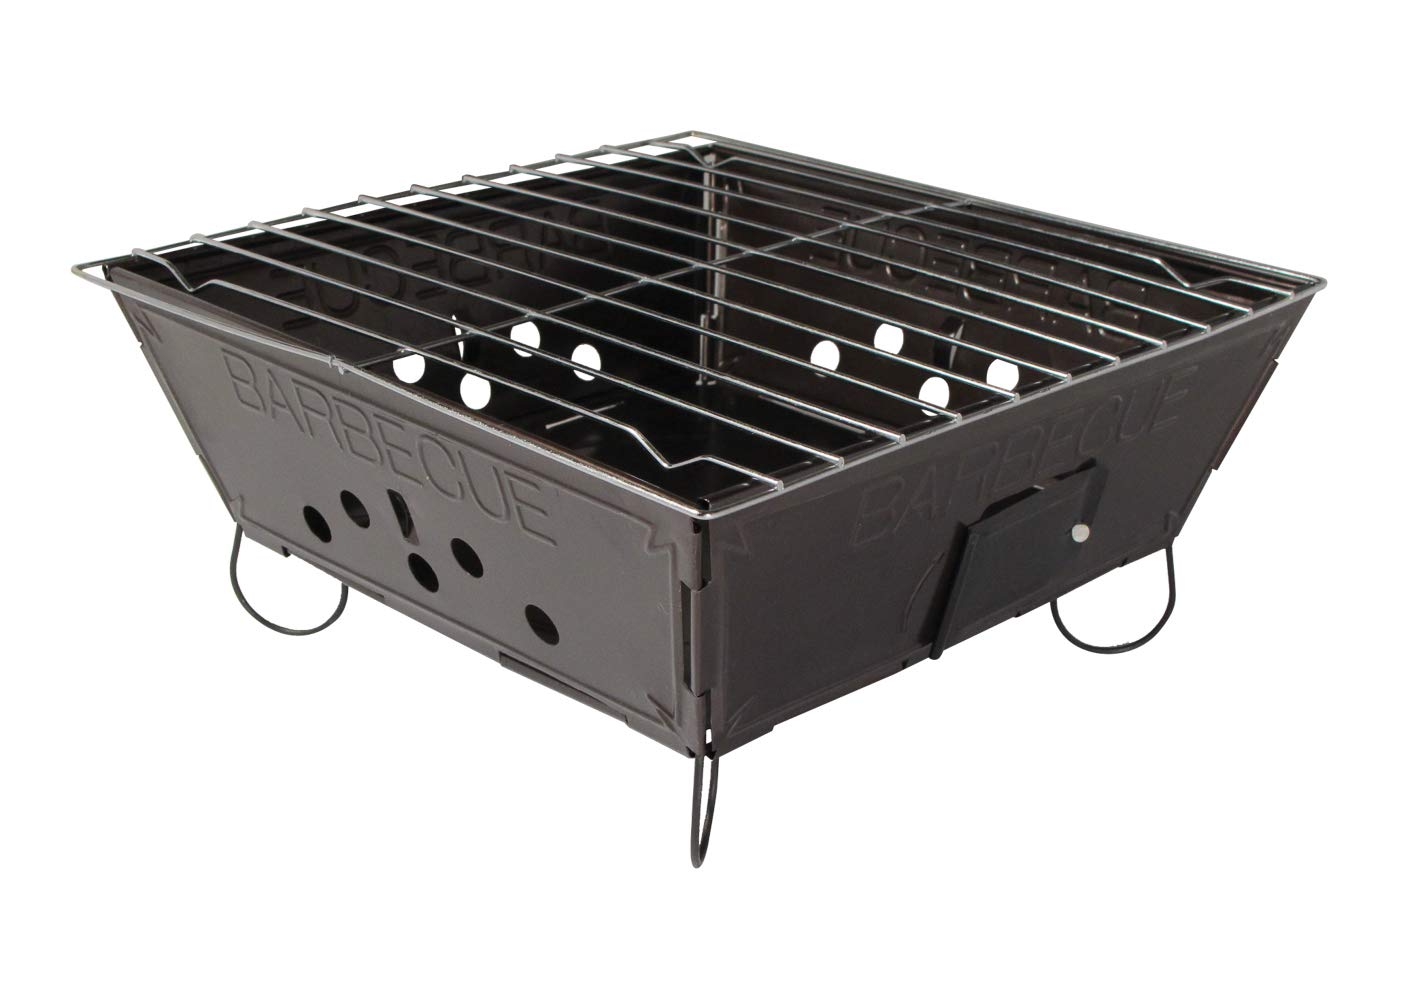 SE Portable Folding Barbecue Grill